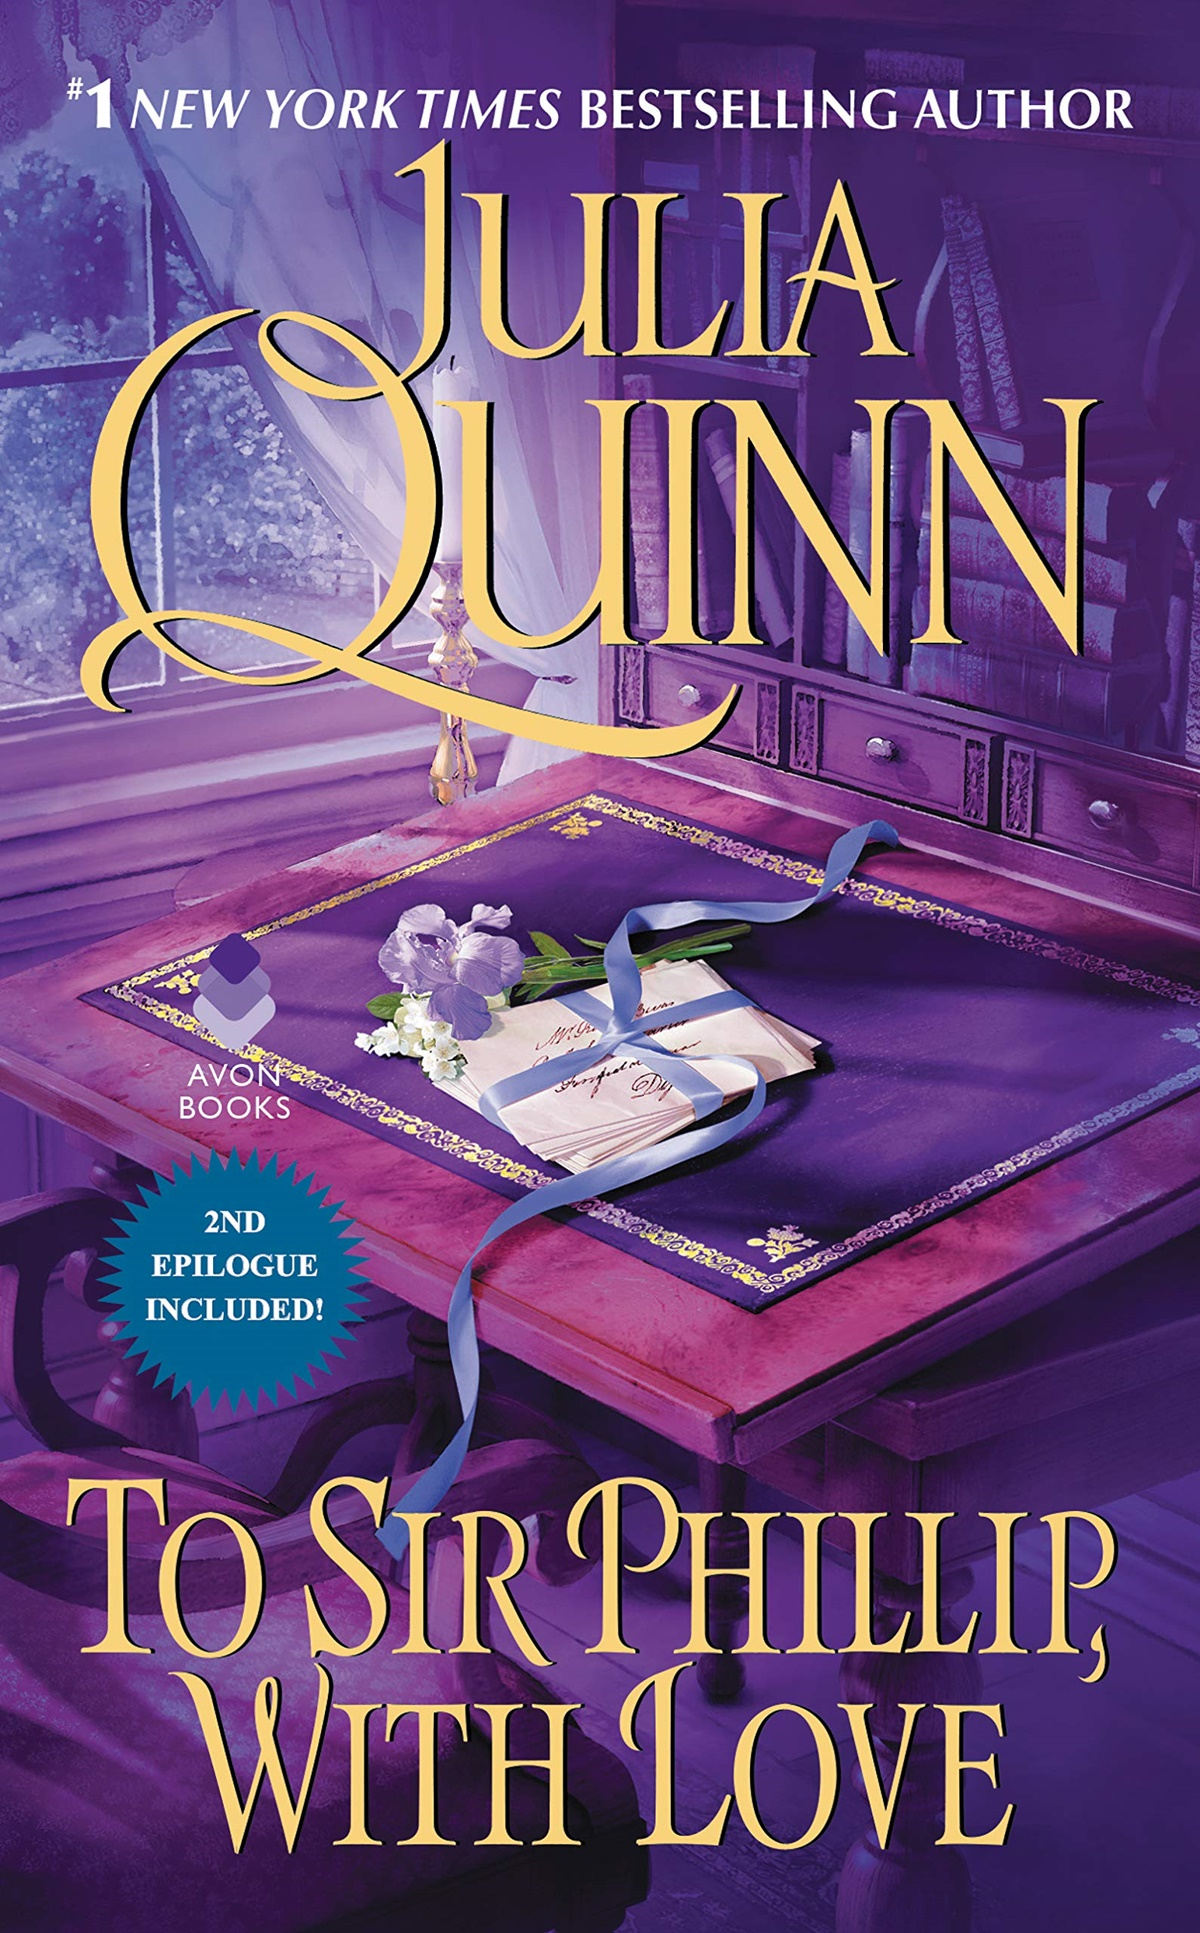 Julia Quinn Books, image of To Sir Phillip, With Love by Julia Quinn, books